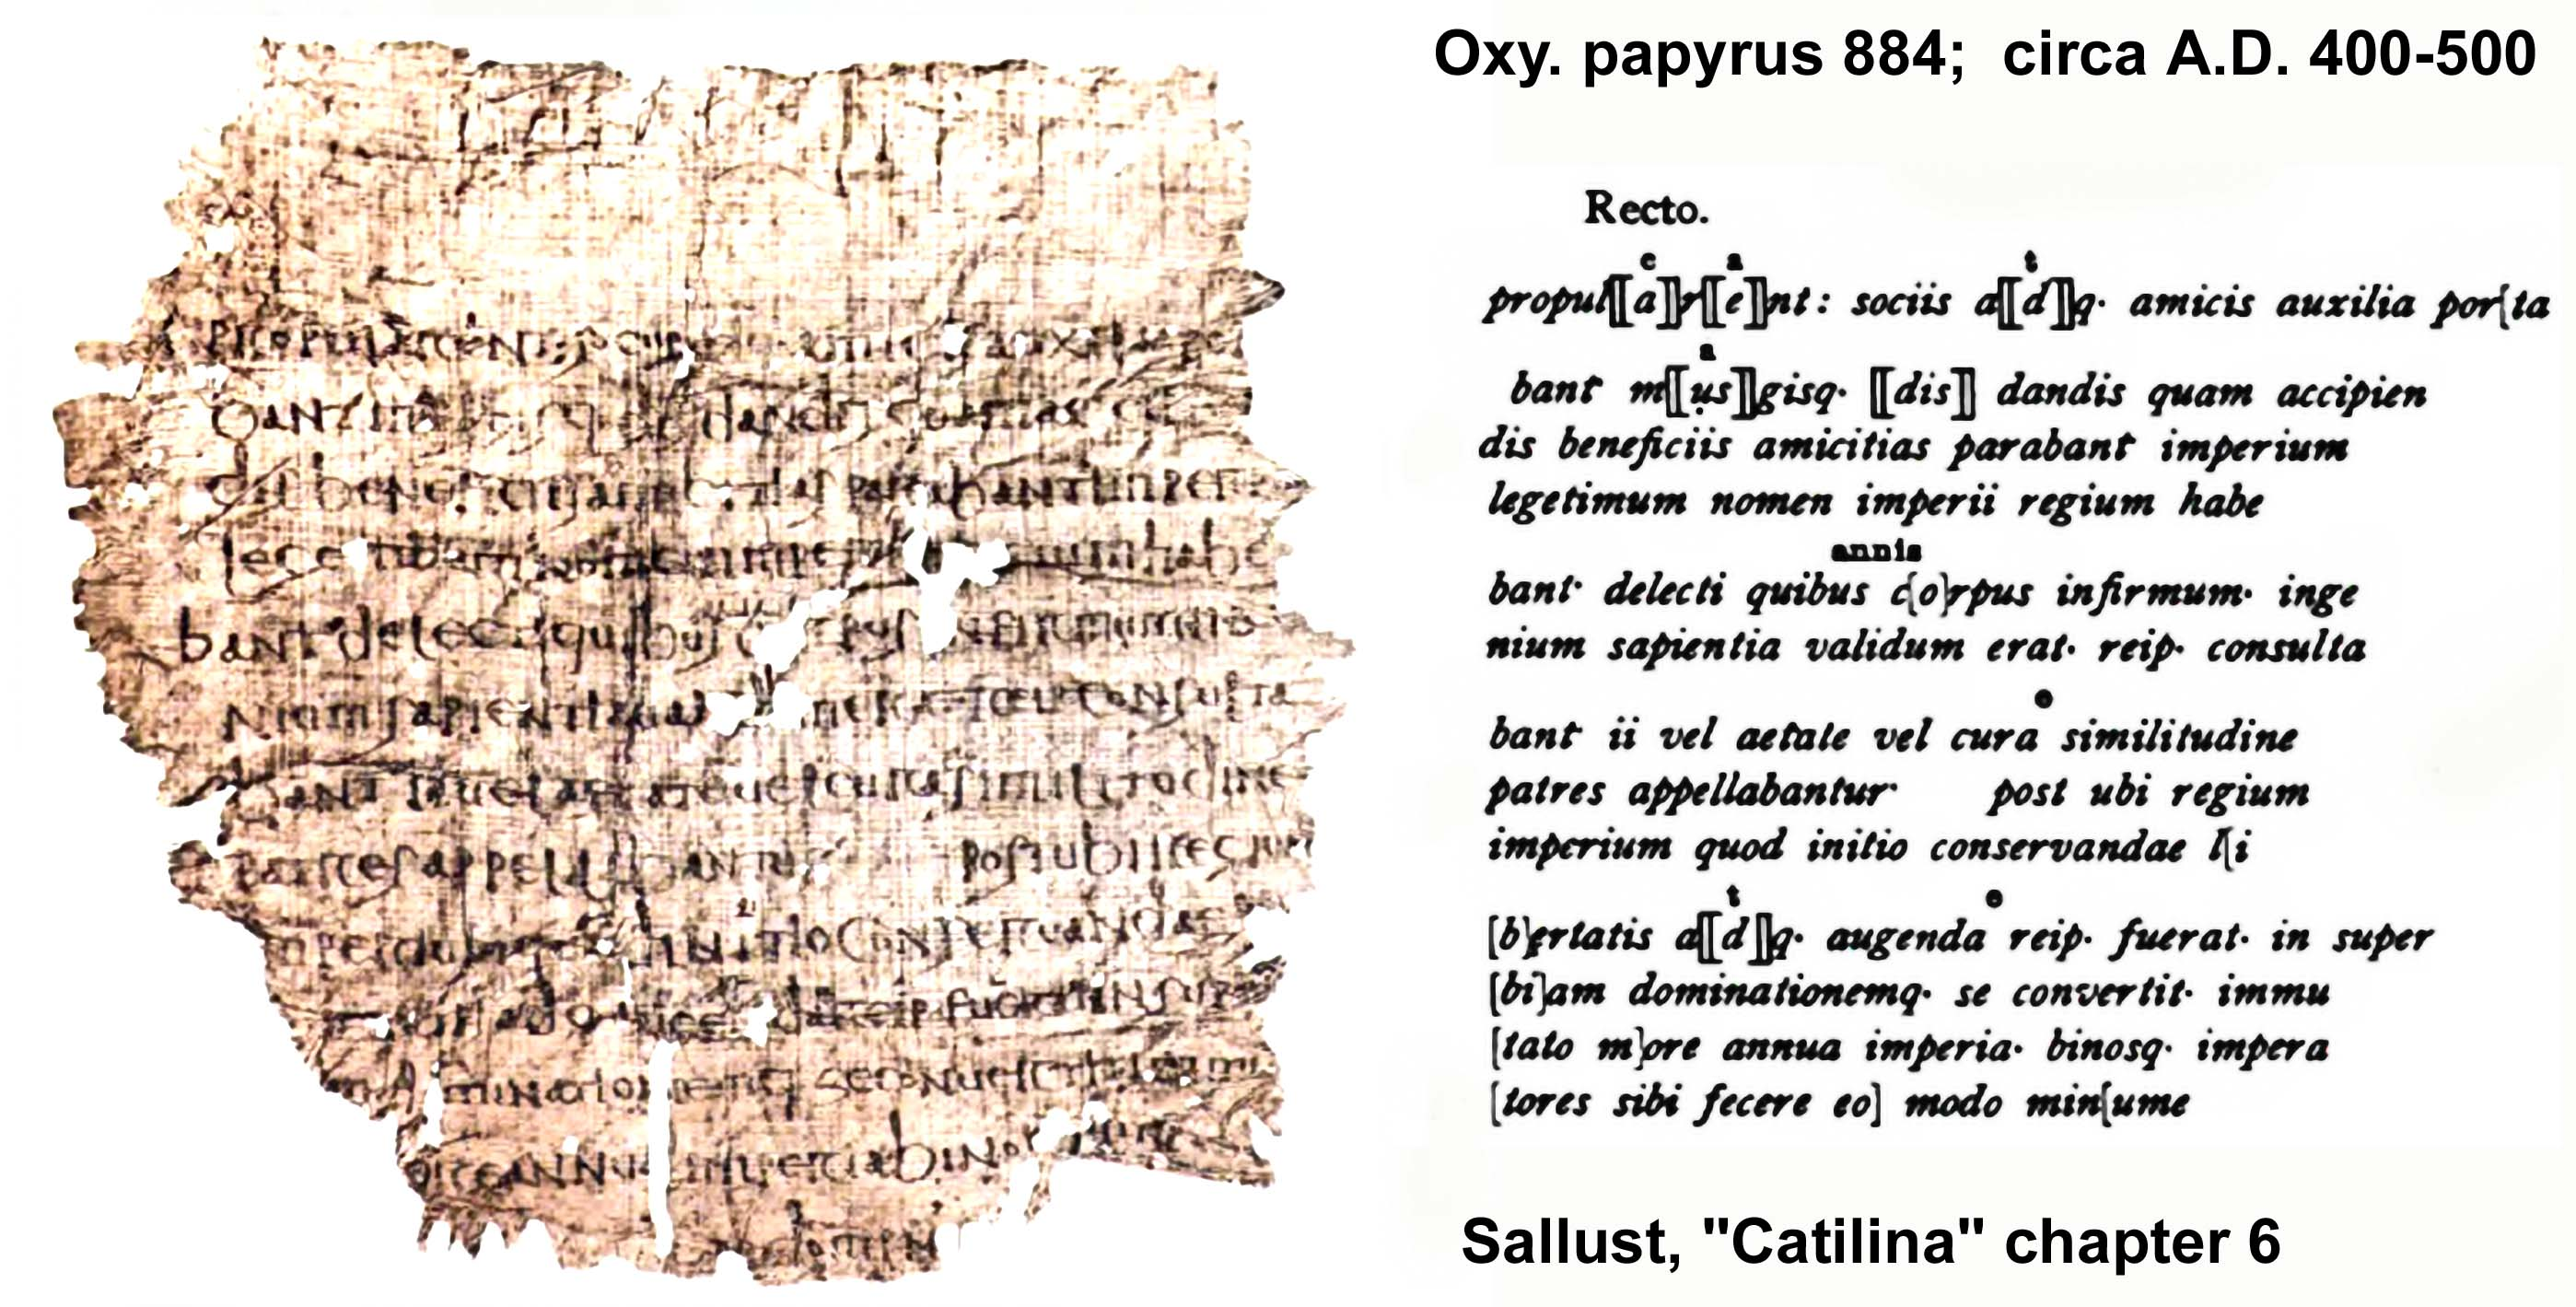 ... Matthew and Luke. Credit on image. Matthew is of the Old Latin text